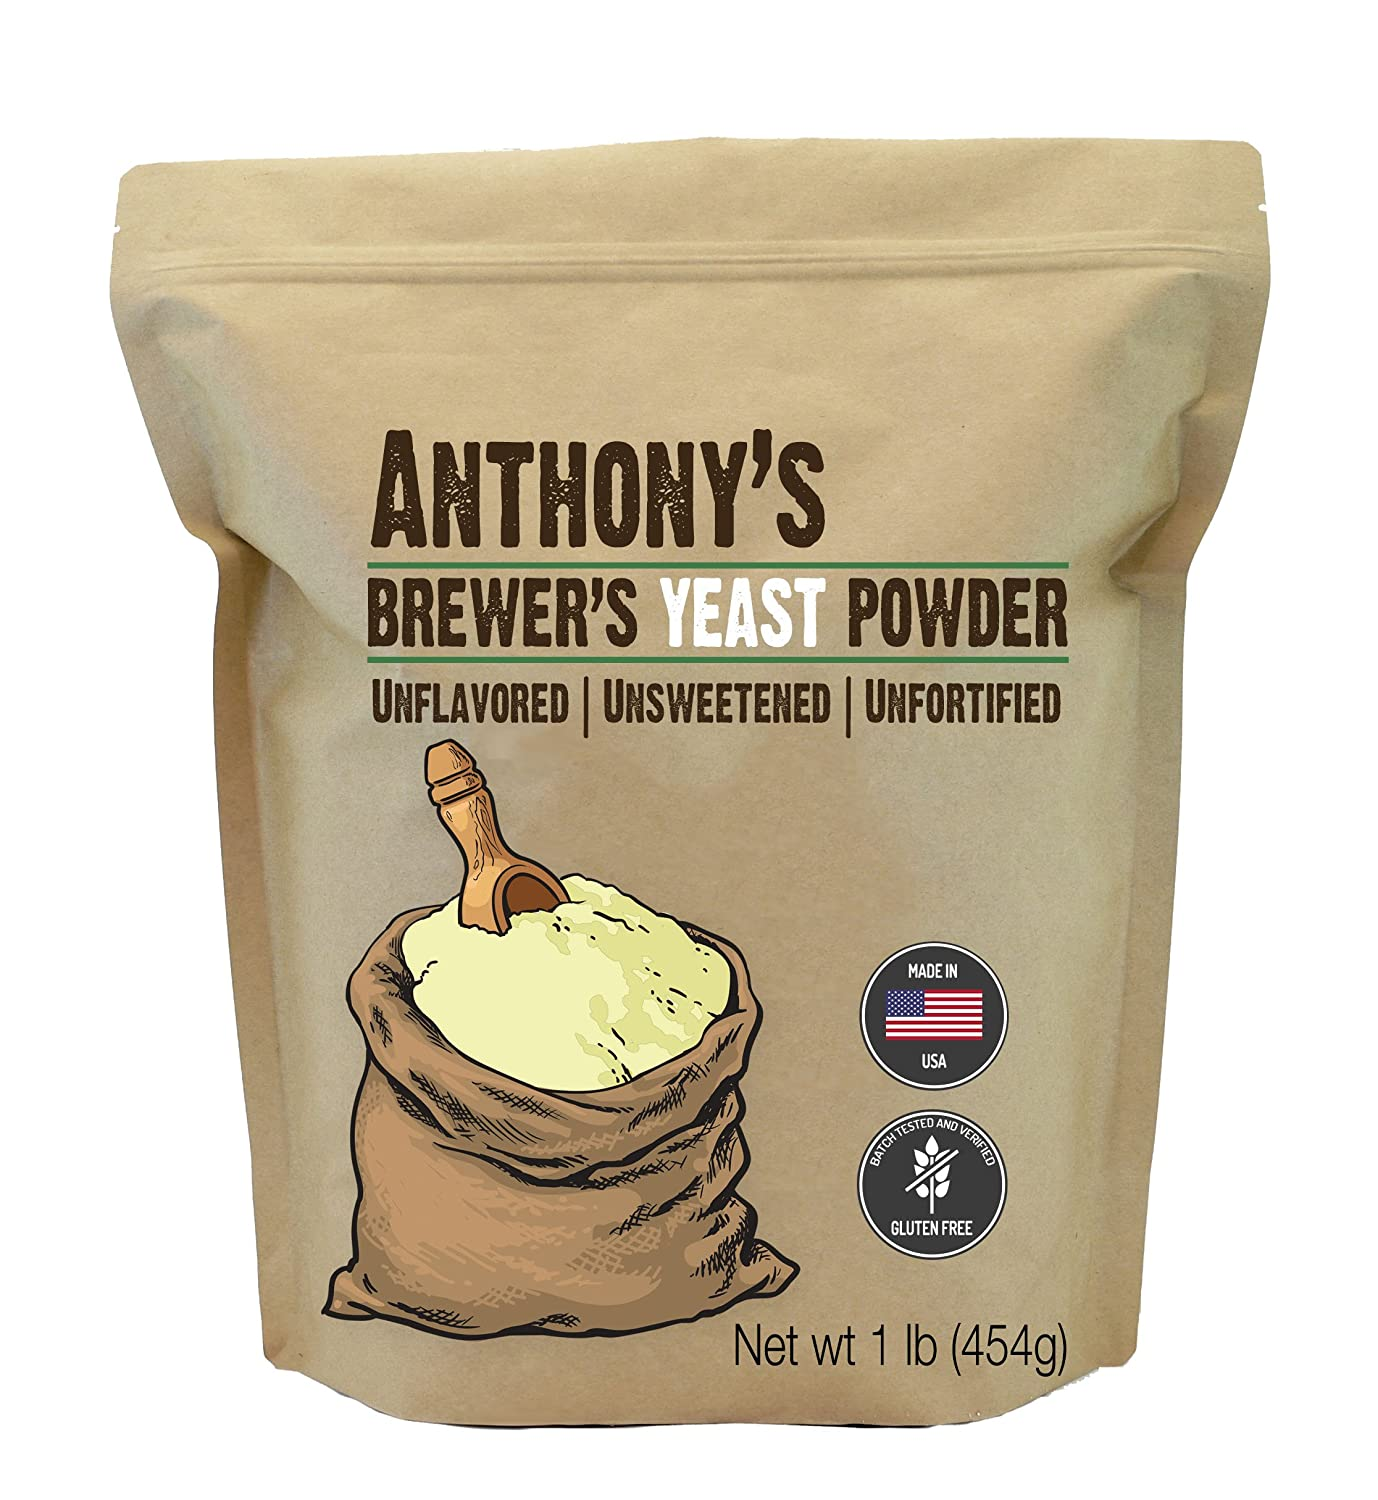 Anthony's Brewer's Yeast, 1 lb, gemacht in USA, Gluten Free, Unflavored and Unsweetened